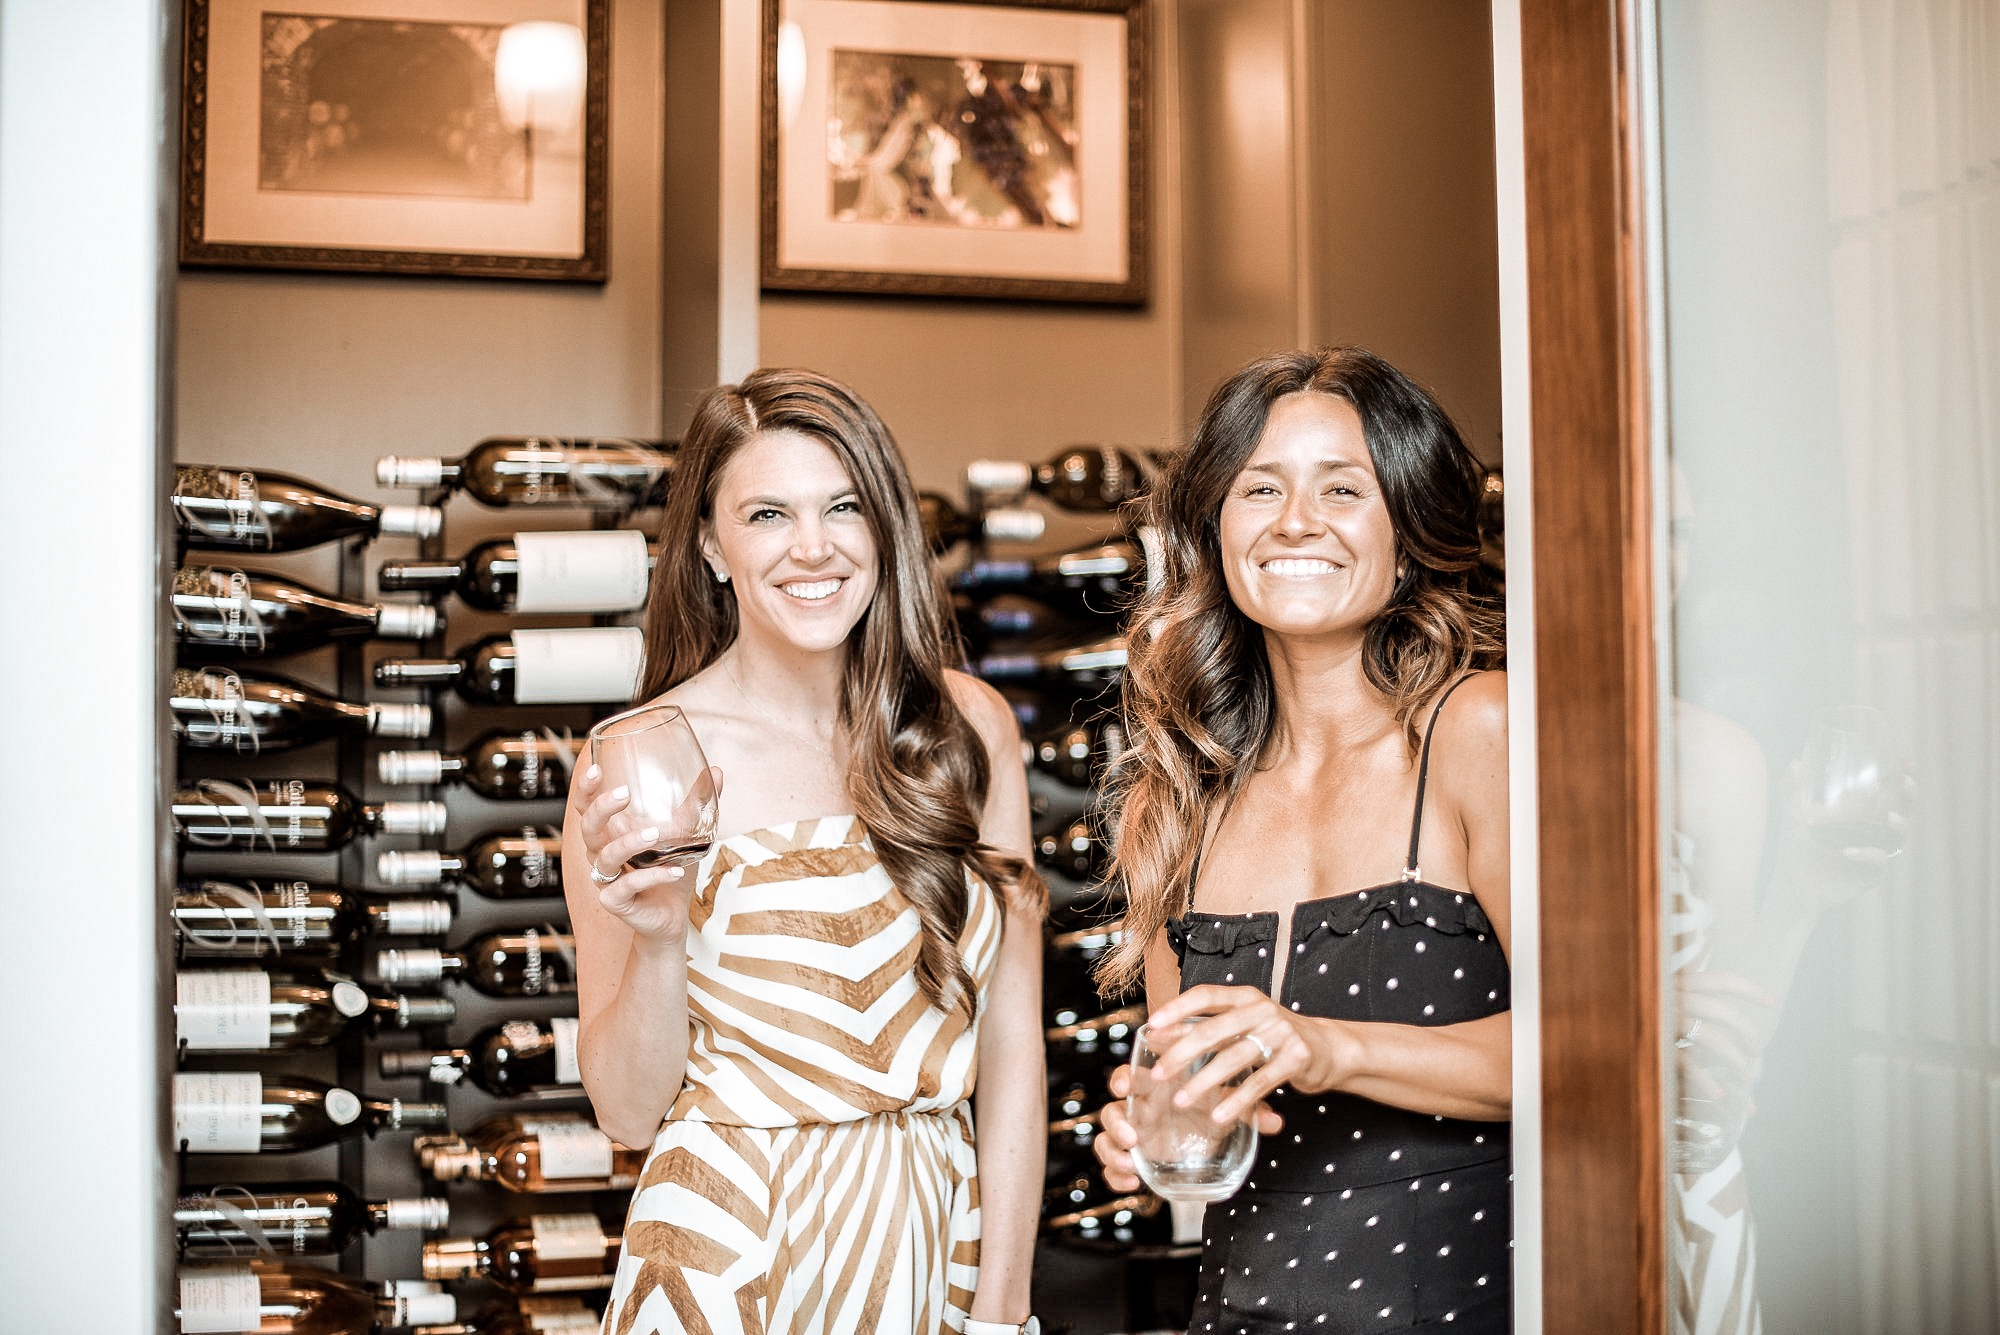 Desire (@desirefalk) and Katie Ann (@thehollytree_) in our home wine cellar...I mean how cute are they?